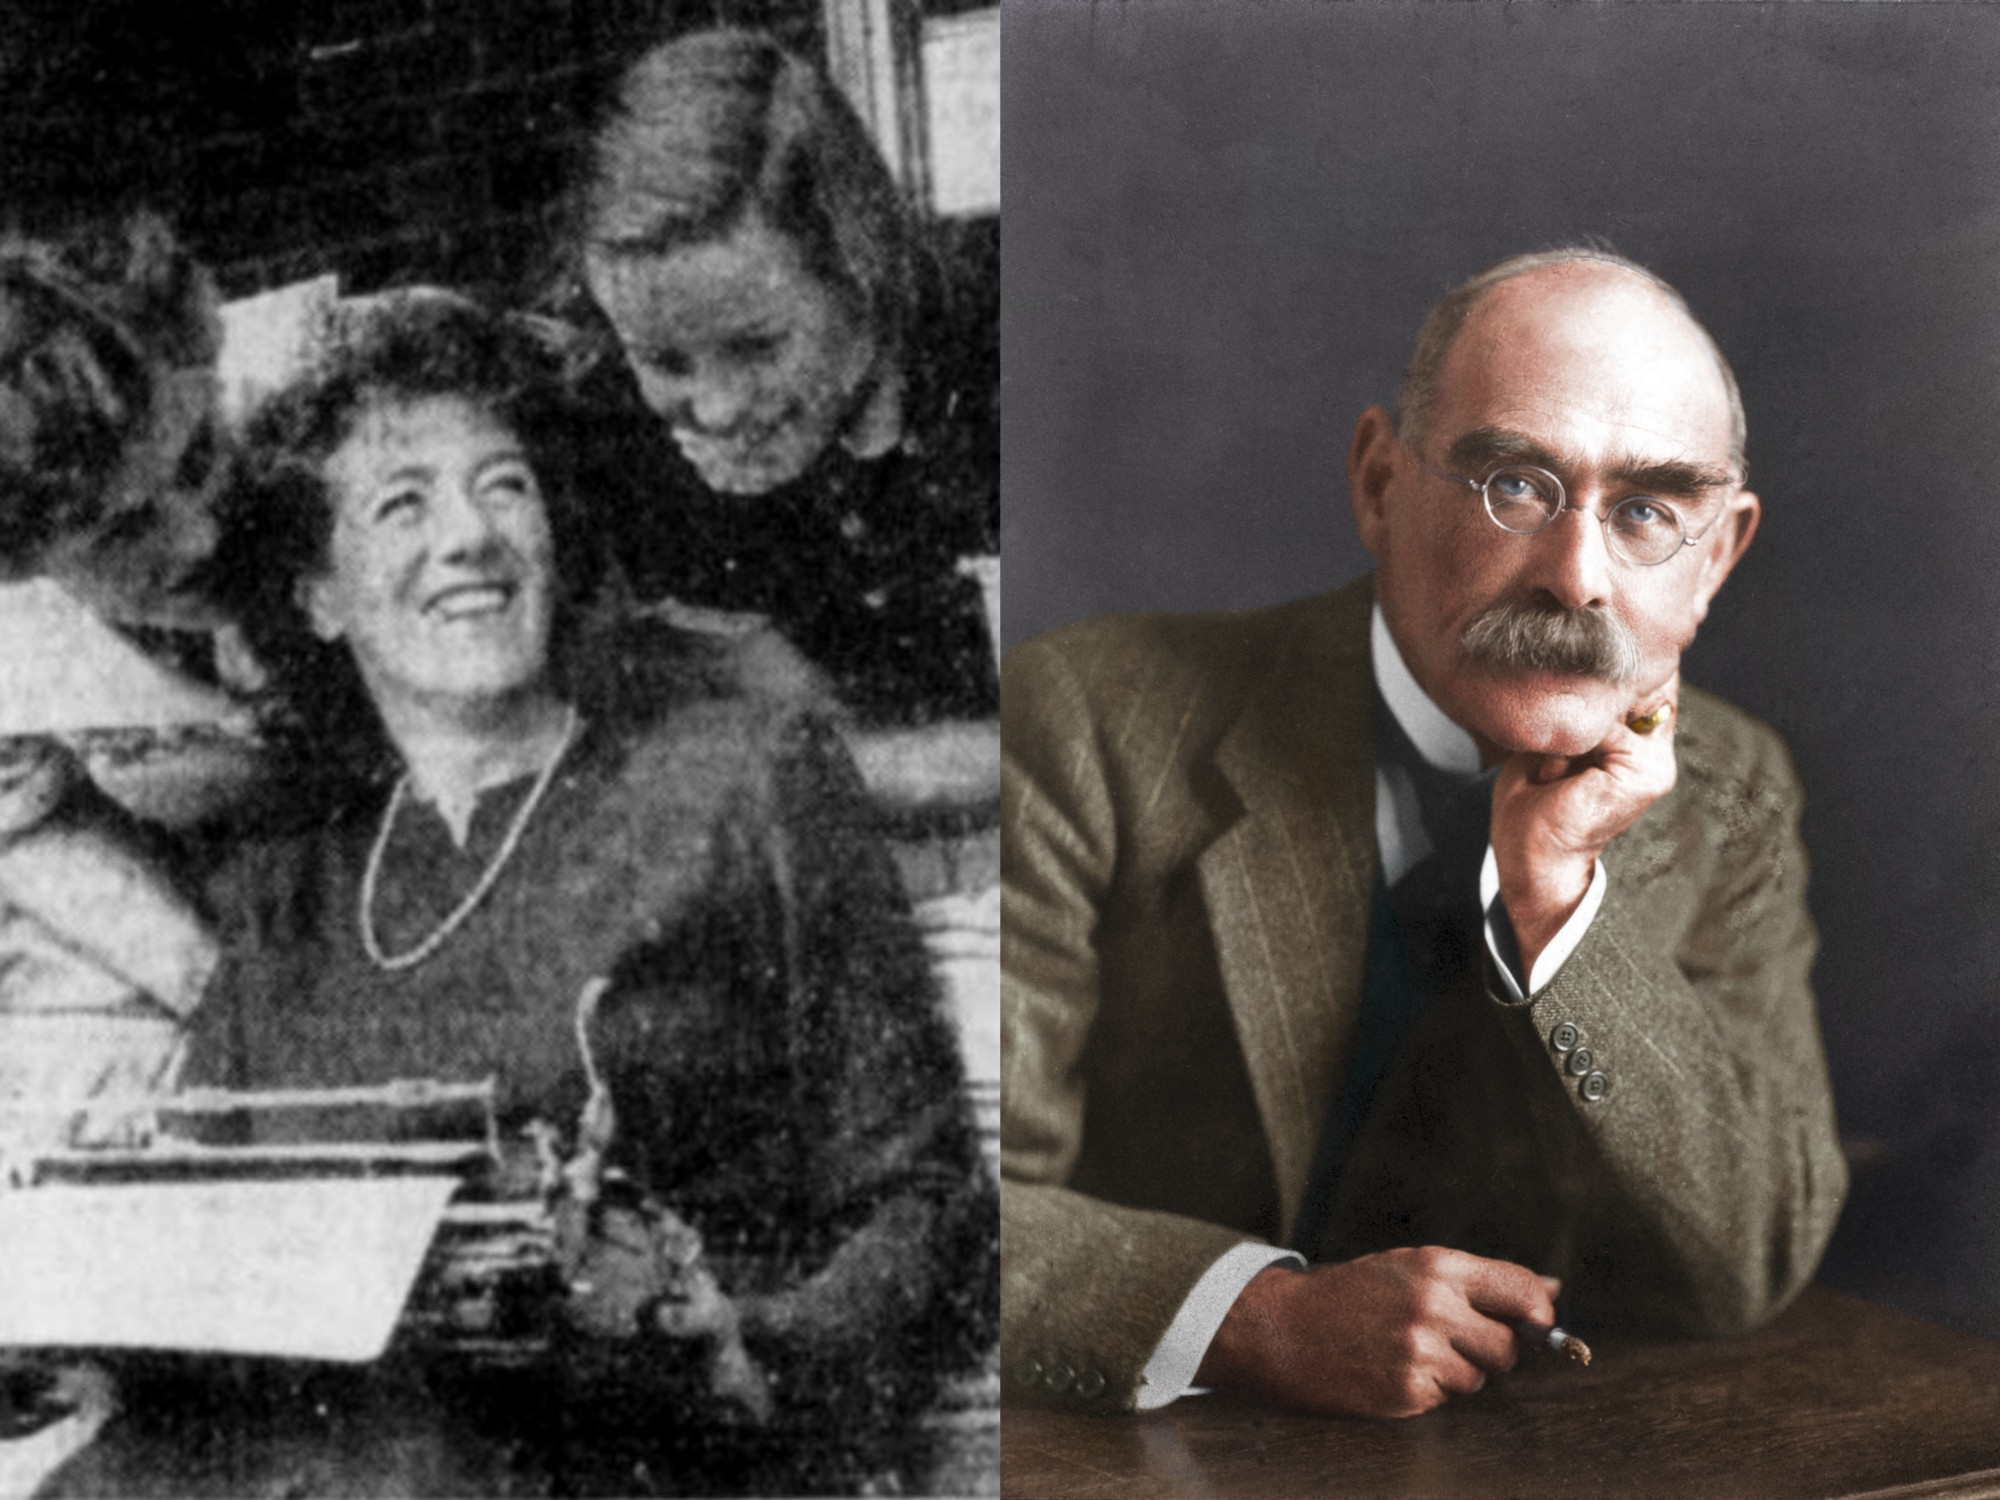 Enid Blyton and Rudyard Kipling from Wikimedia commons